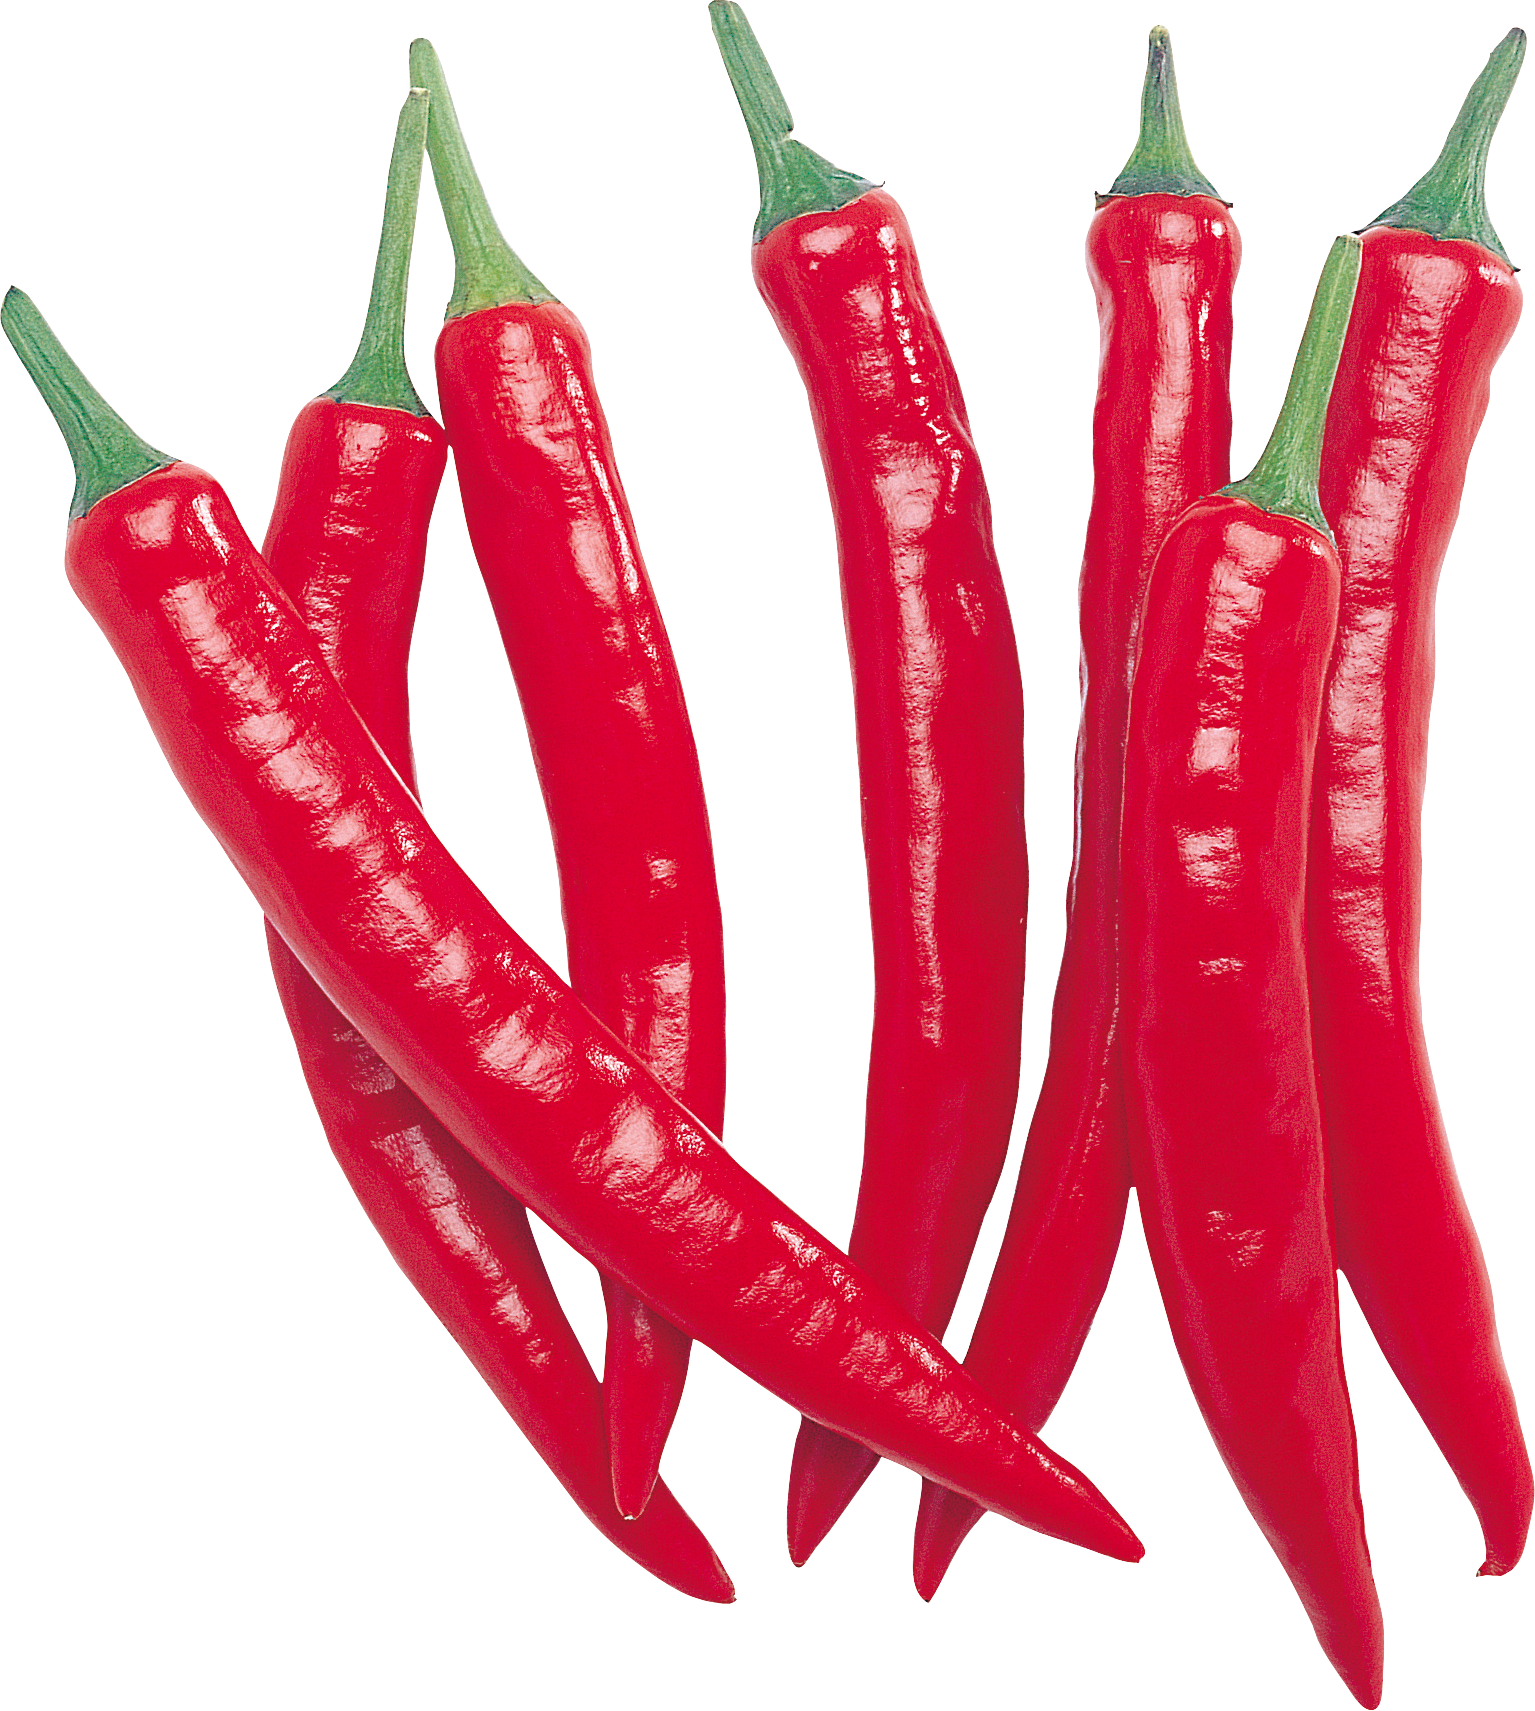 Pepper clipart serrano pepper. Hot chili one isolated